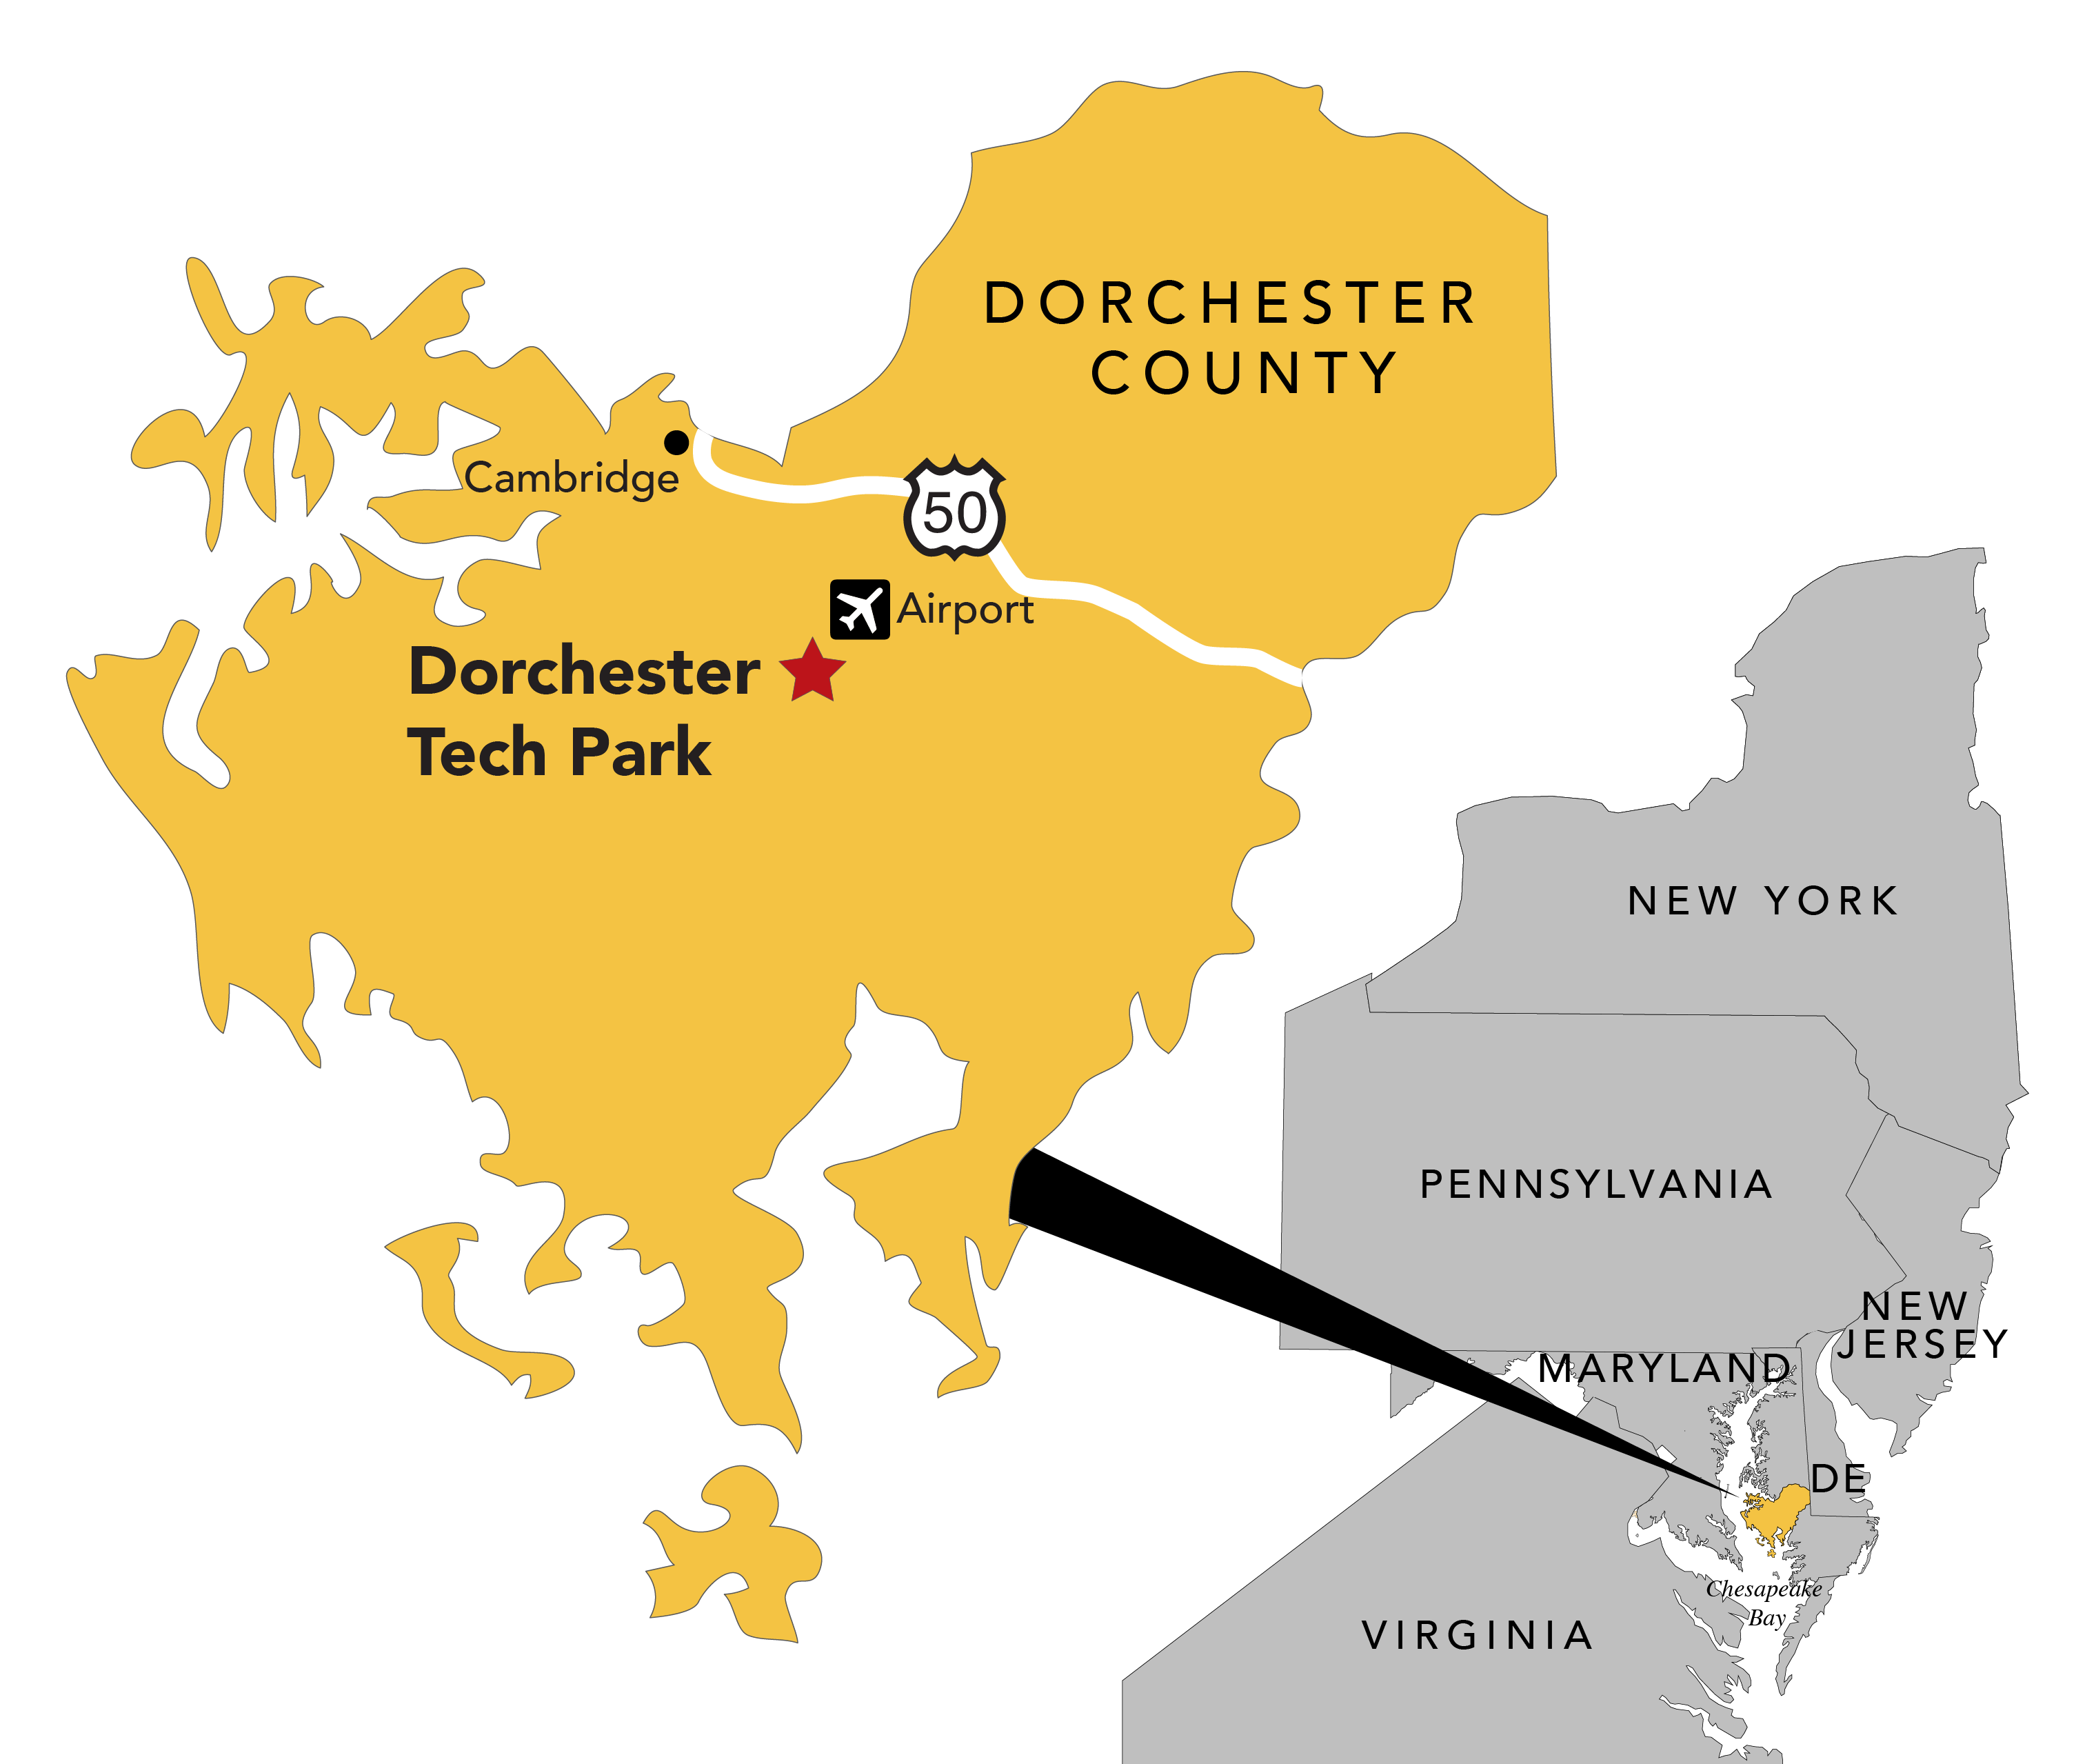 DorchesterMap_ChooseDorchester